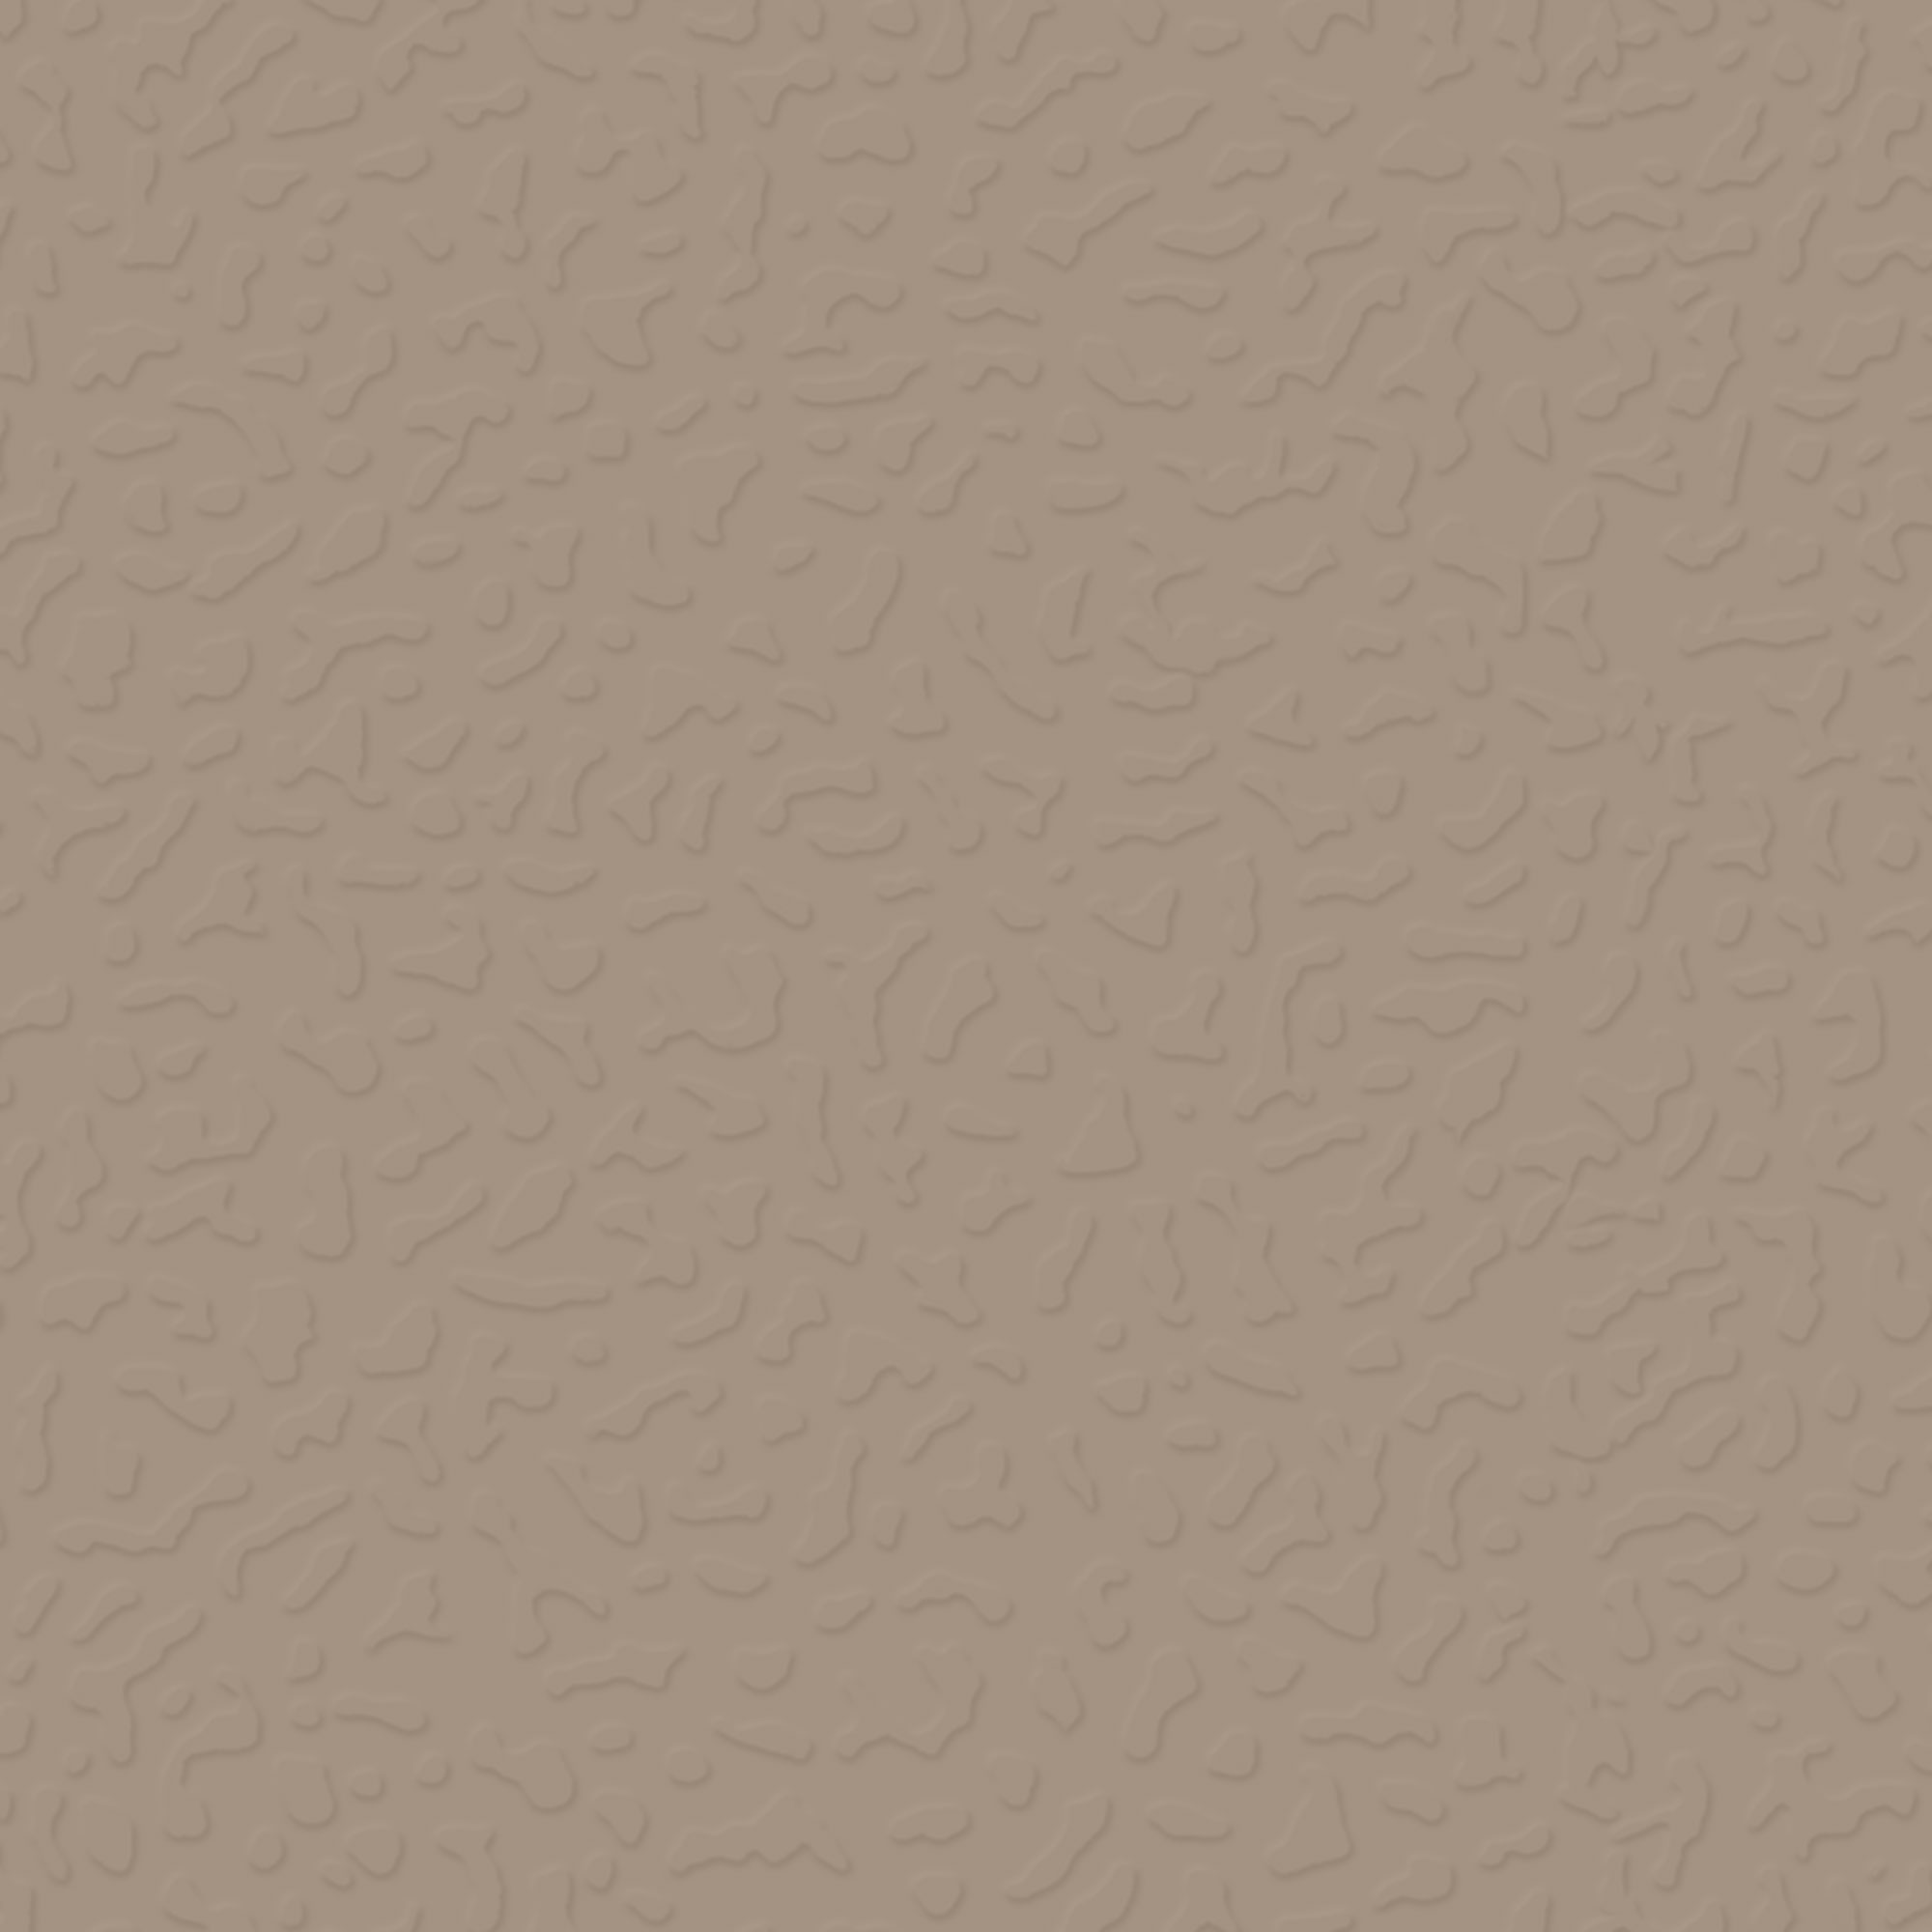 Roppe Rubber Tile 900 - Textured Design (993) Camel Rubber Flooring